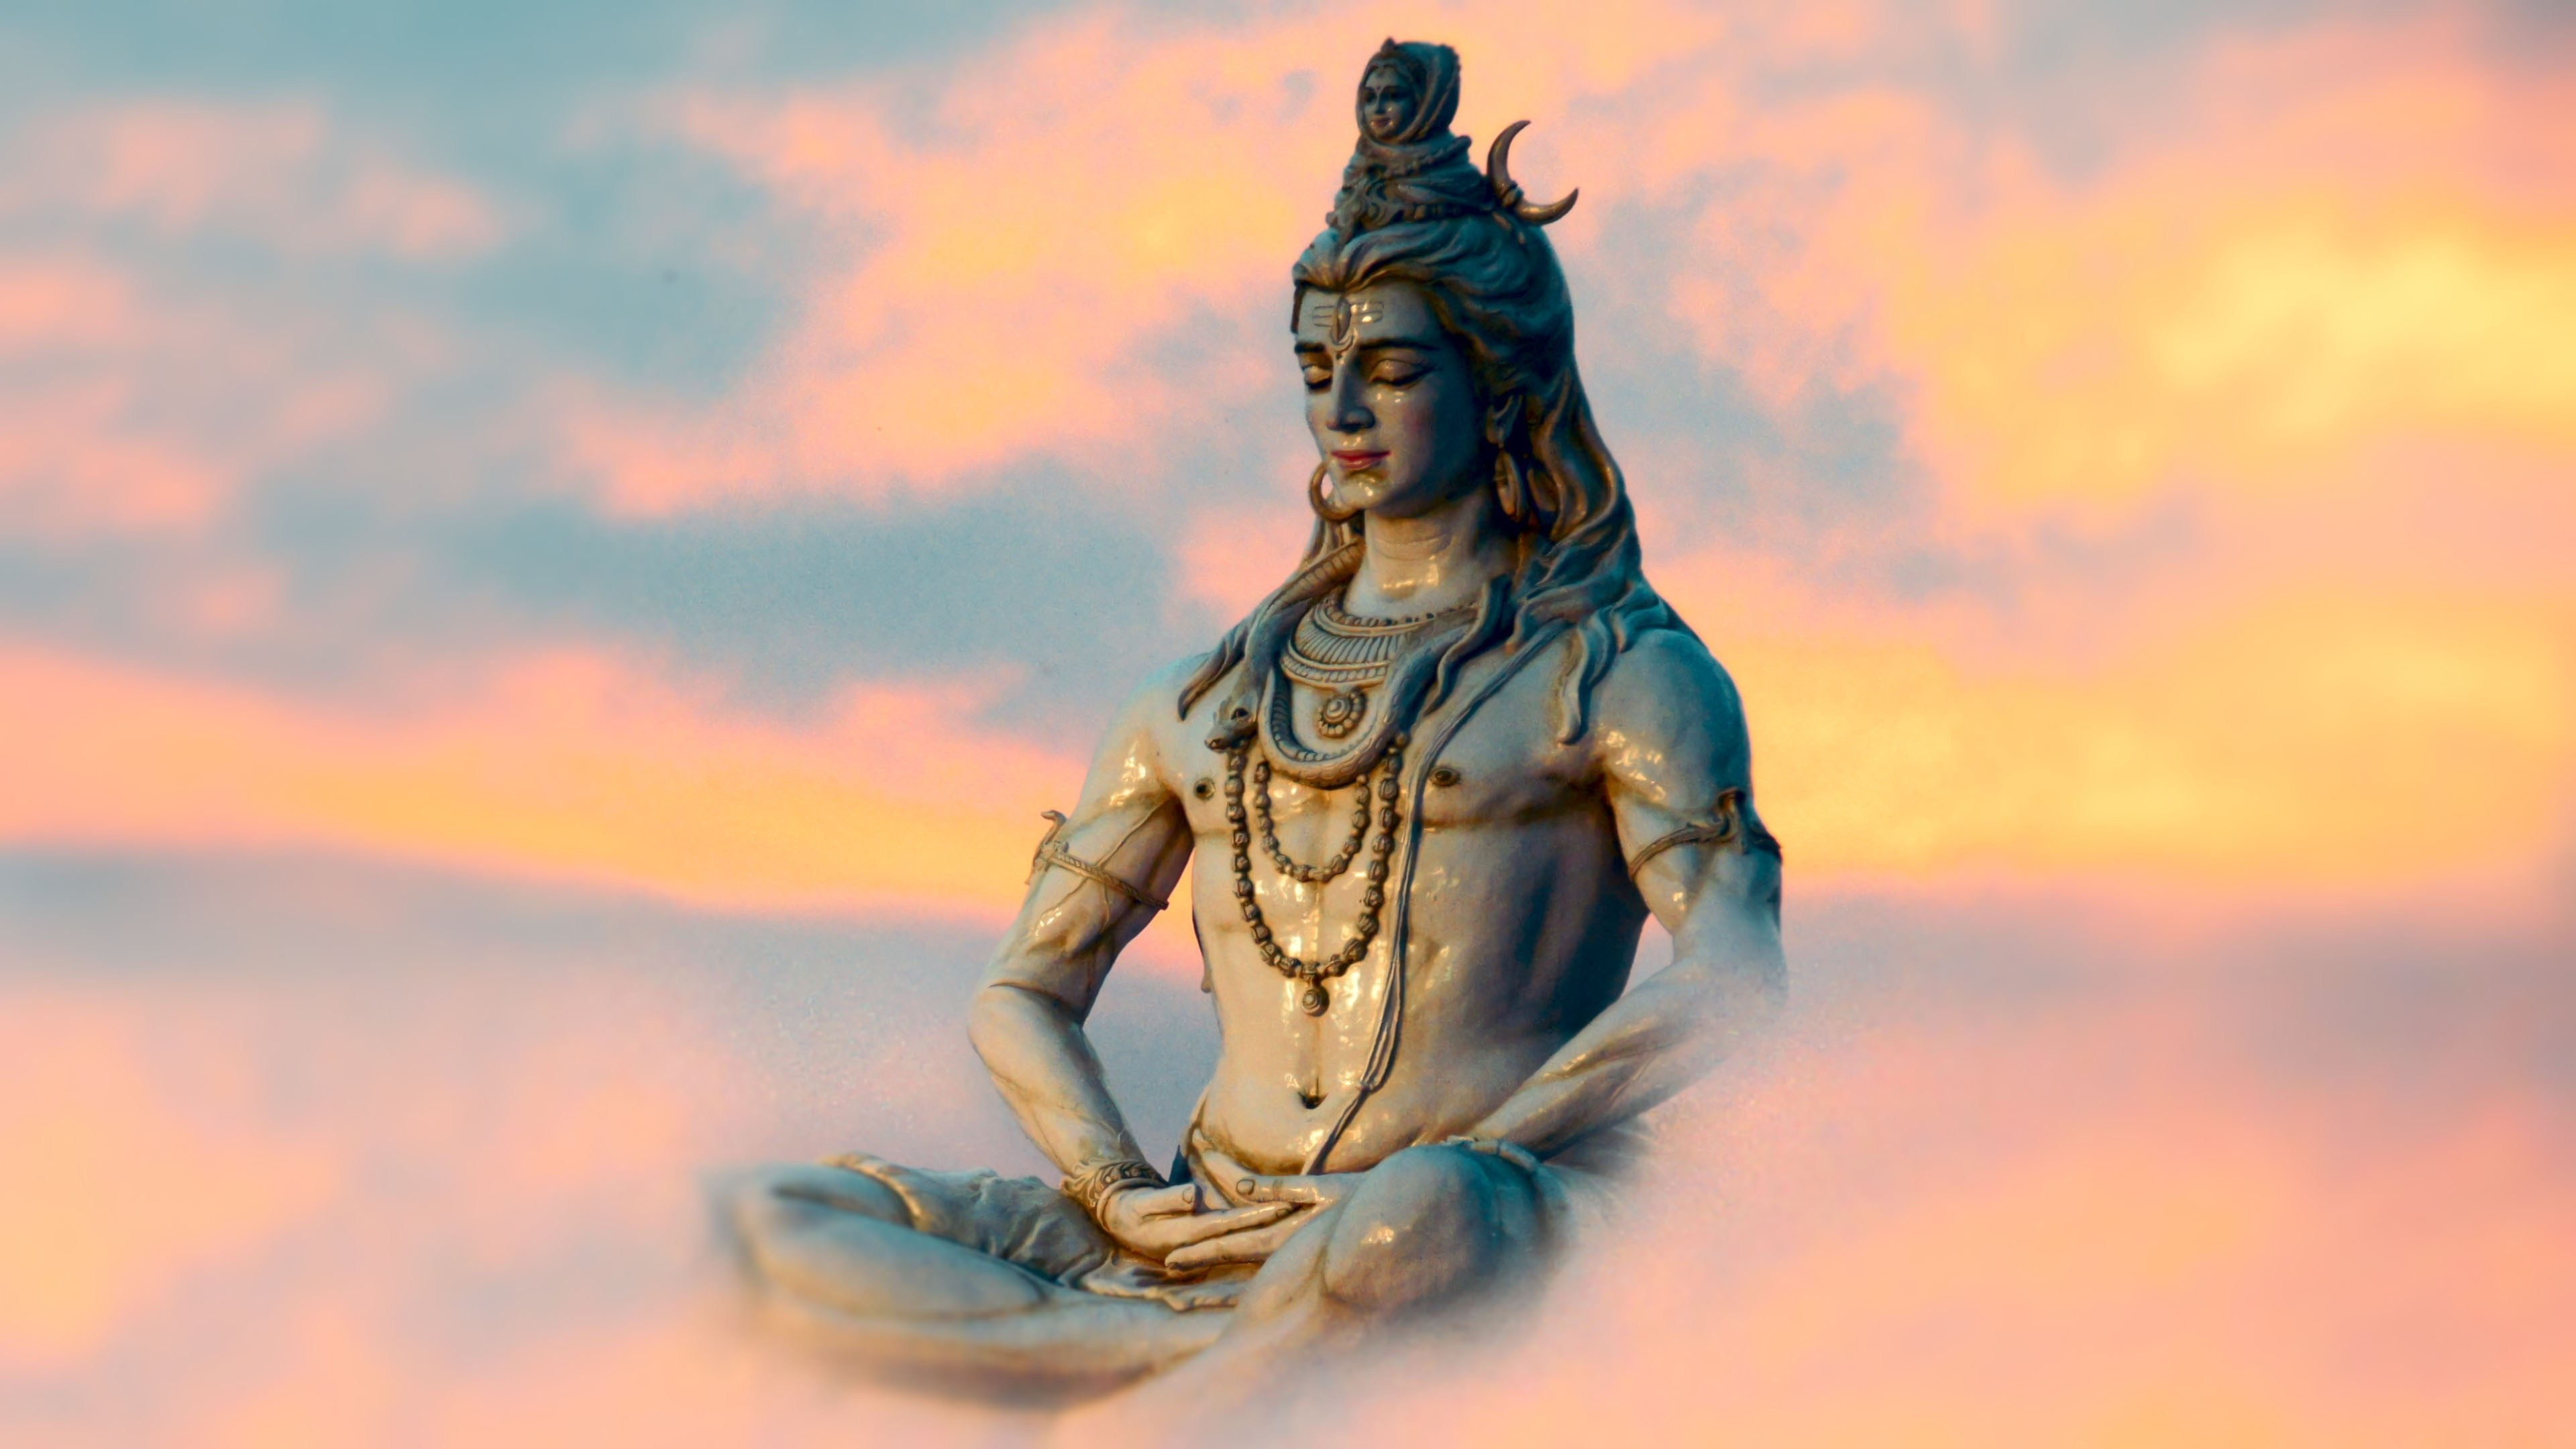 Lord shiva wallpapers 73 background pictures - New lord shiva wallpapers ...